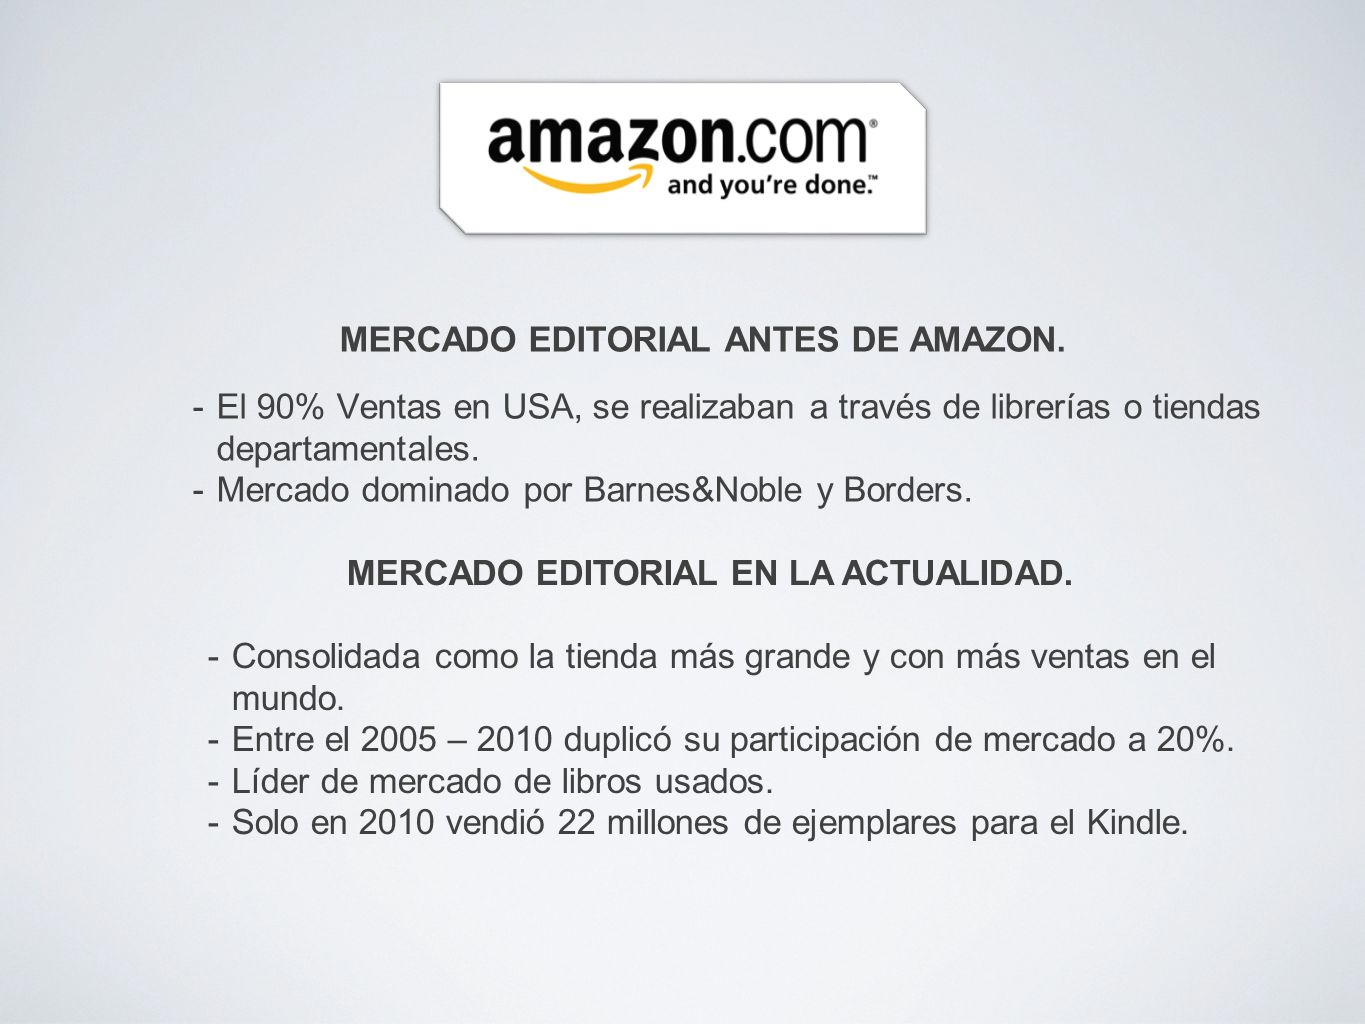 MERCADO EDITORIAL ANTES DE AMAZON.